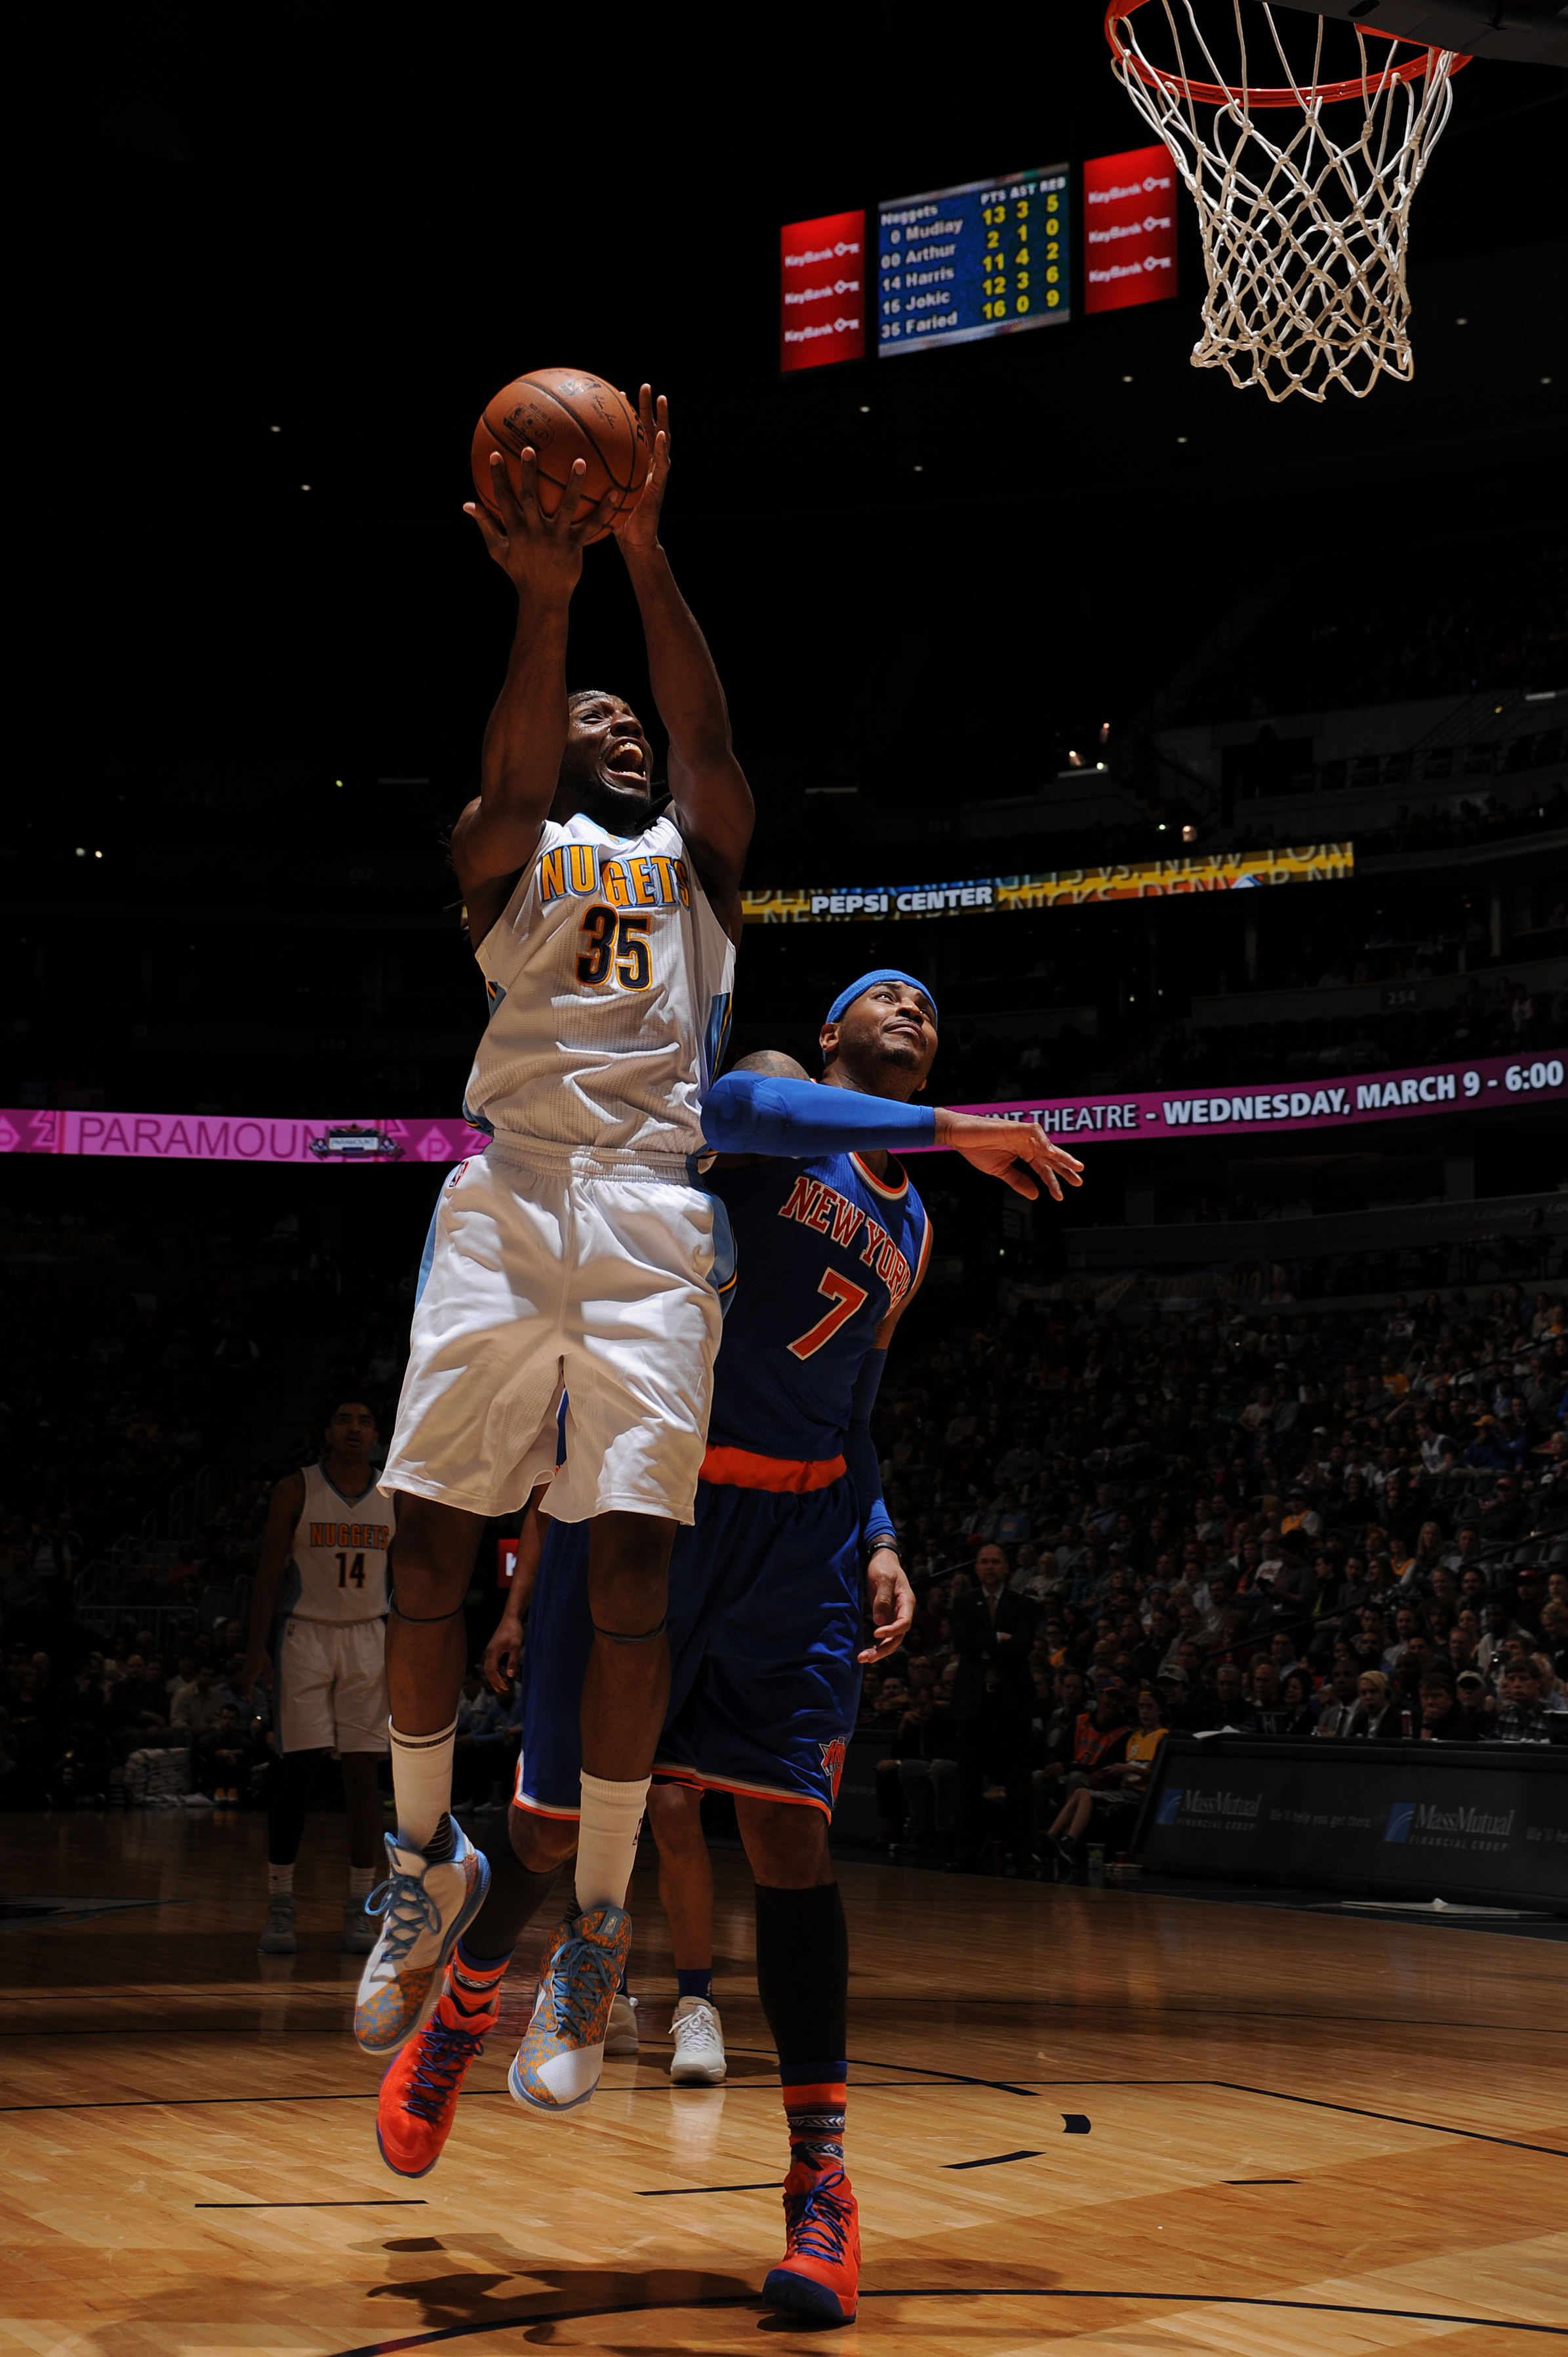 DENVER, CO - MARCH 8:  Kenneth Faried #35 of the Denver Nuggets goes to the basket against the New York Knicks on March 8, 2016 at the Pepsi Center in Denver, Colorado. (Photo by Bart Young/NBAE via Getty Images)